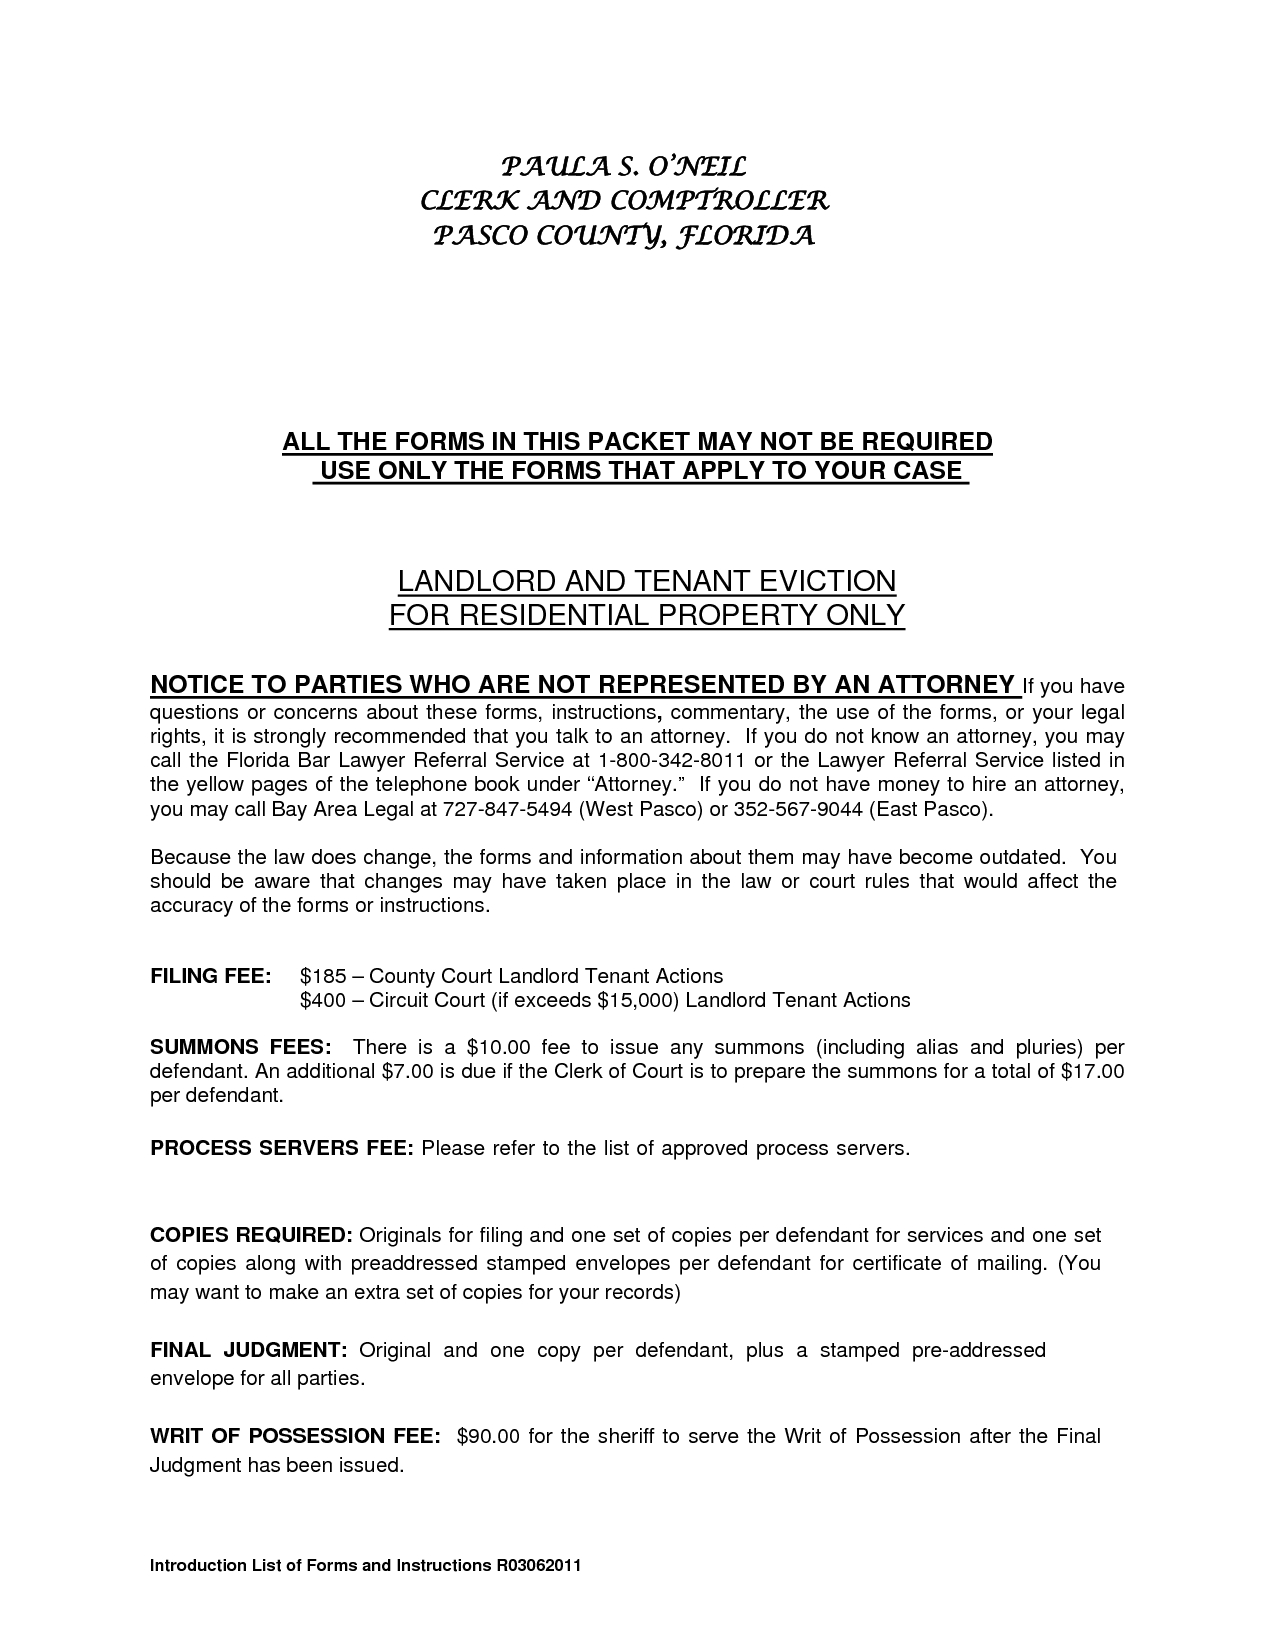 Foreclosure Letter Template - Residential Landlord Tenant Eviction Notice form by Ere